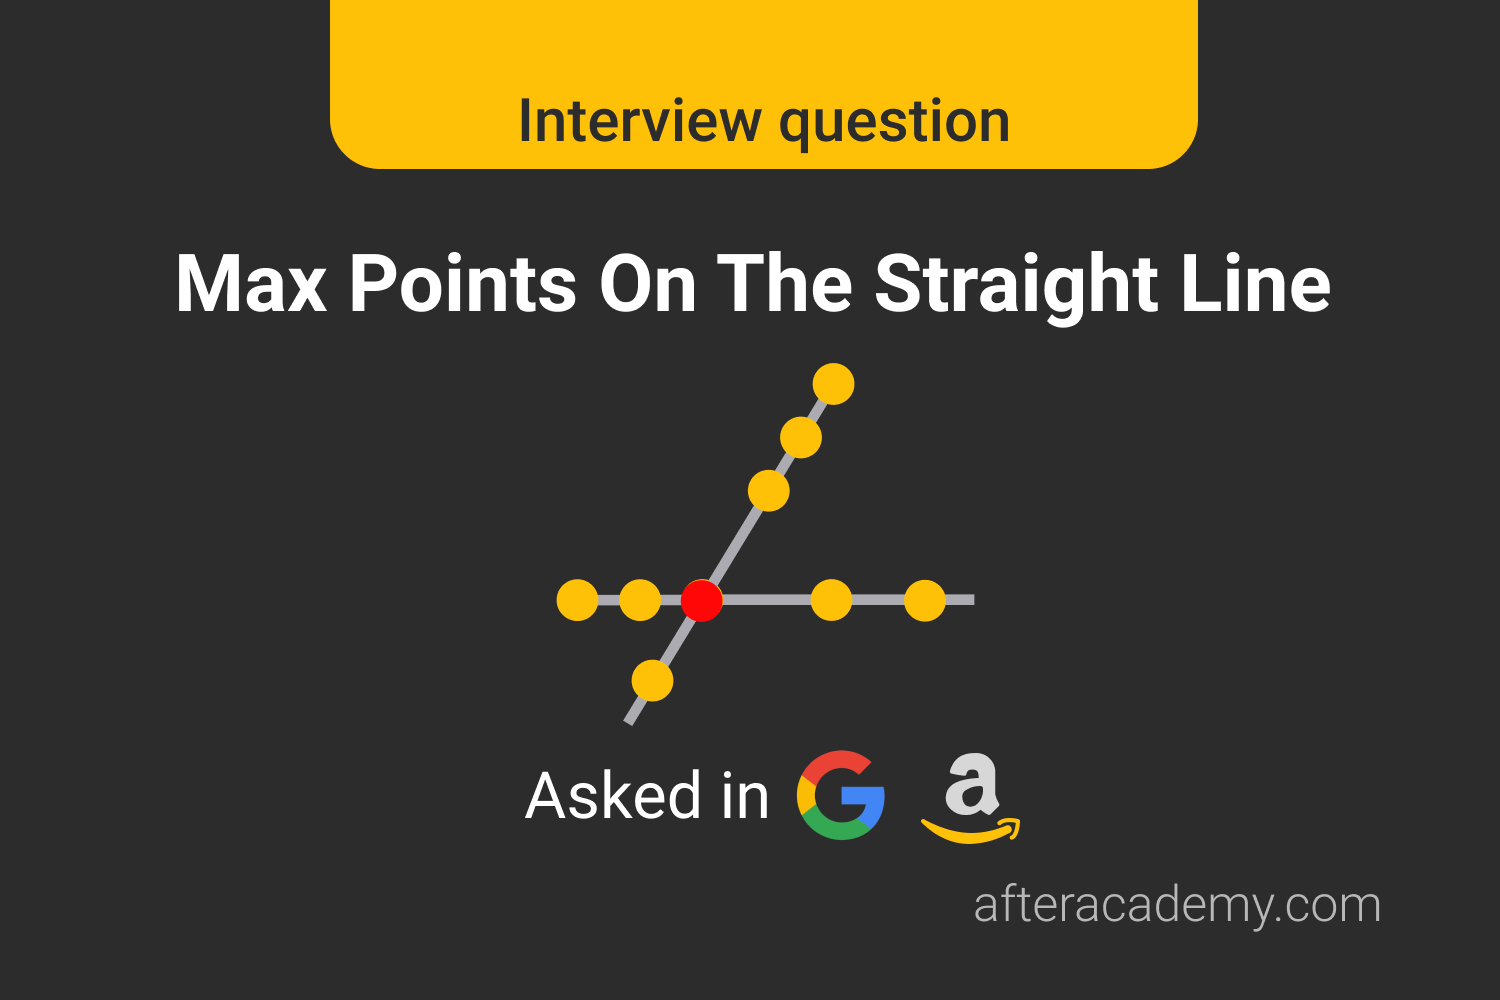 Max Points On The Straight Line